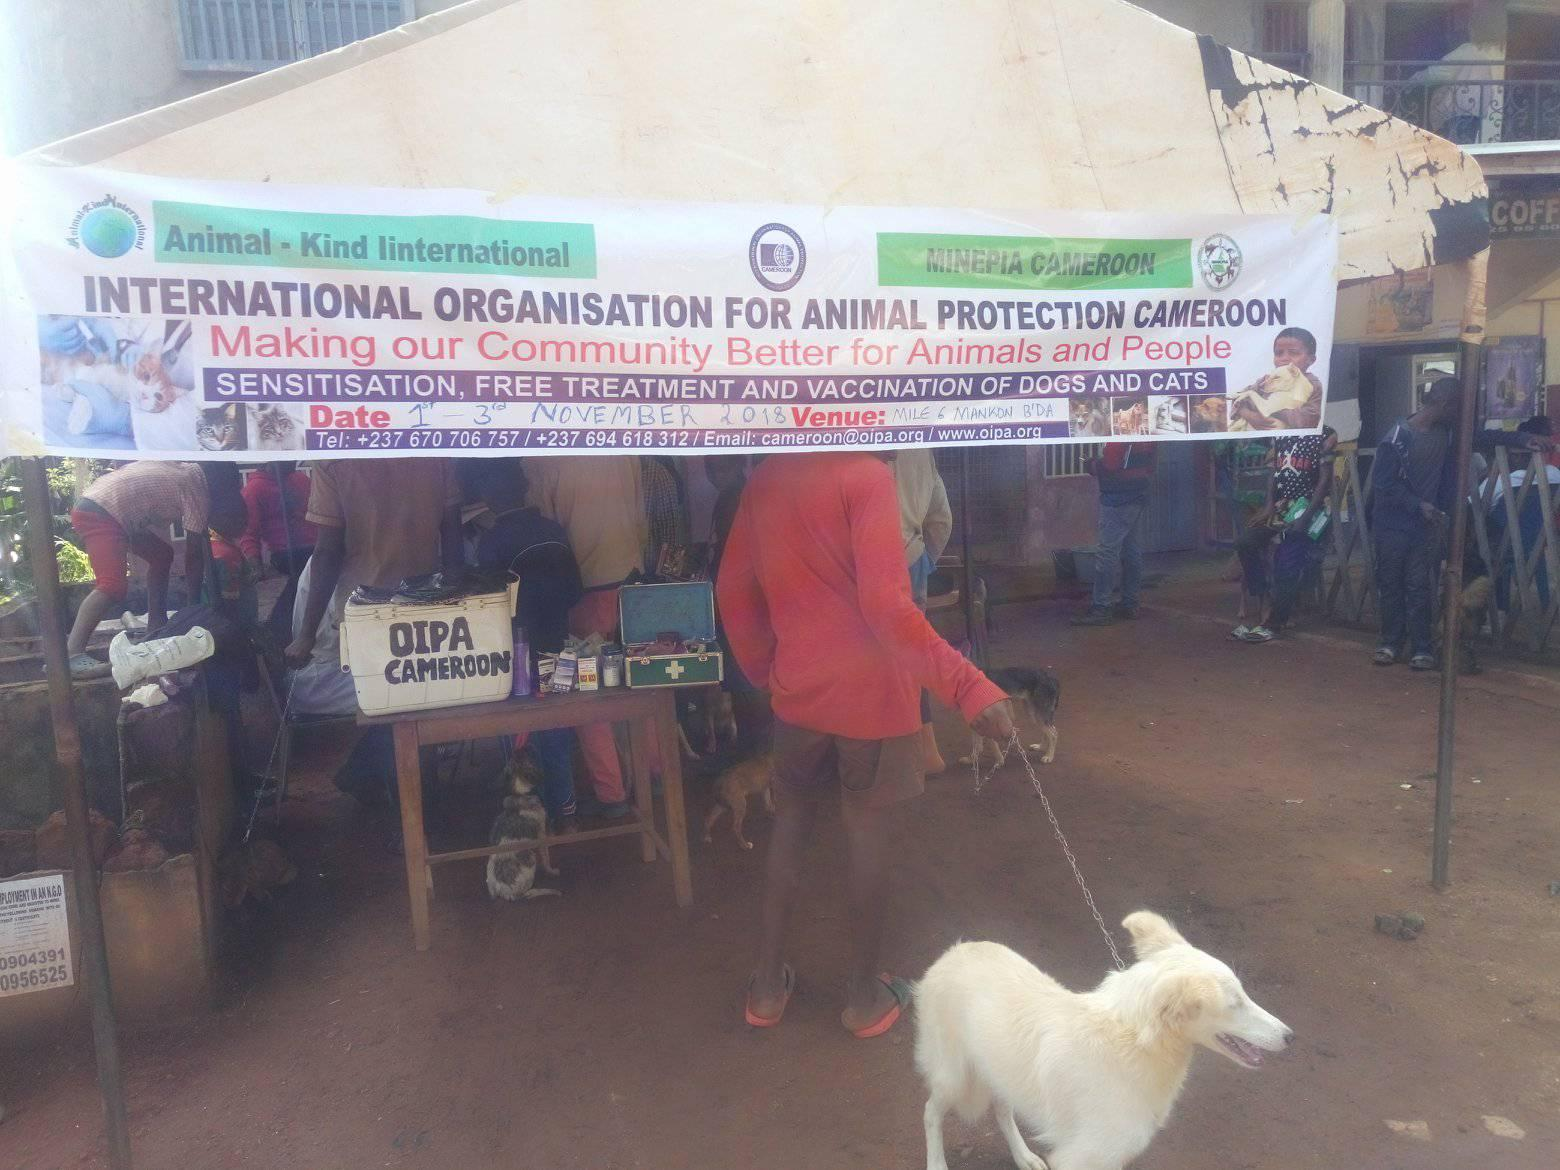 OIPA CAMEROON VACCINATES MORE THAN 100 DOGS AND CATS